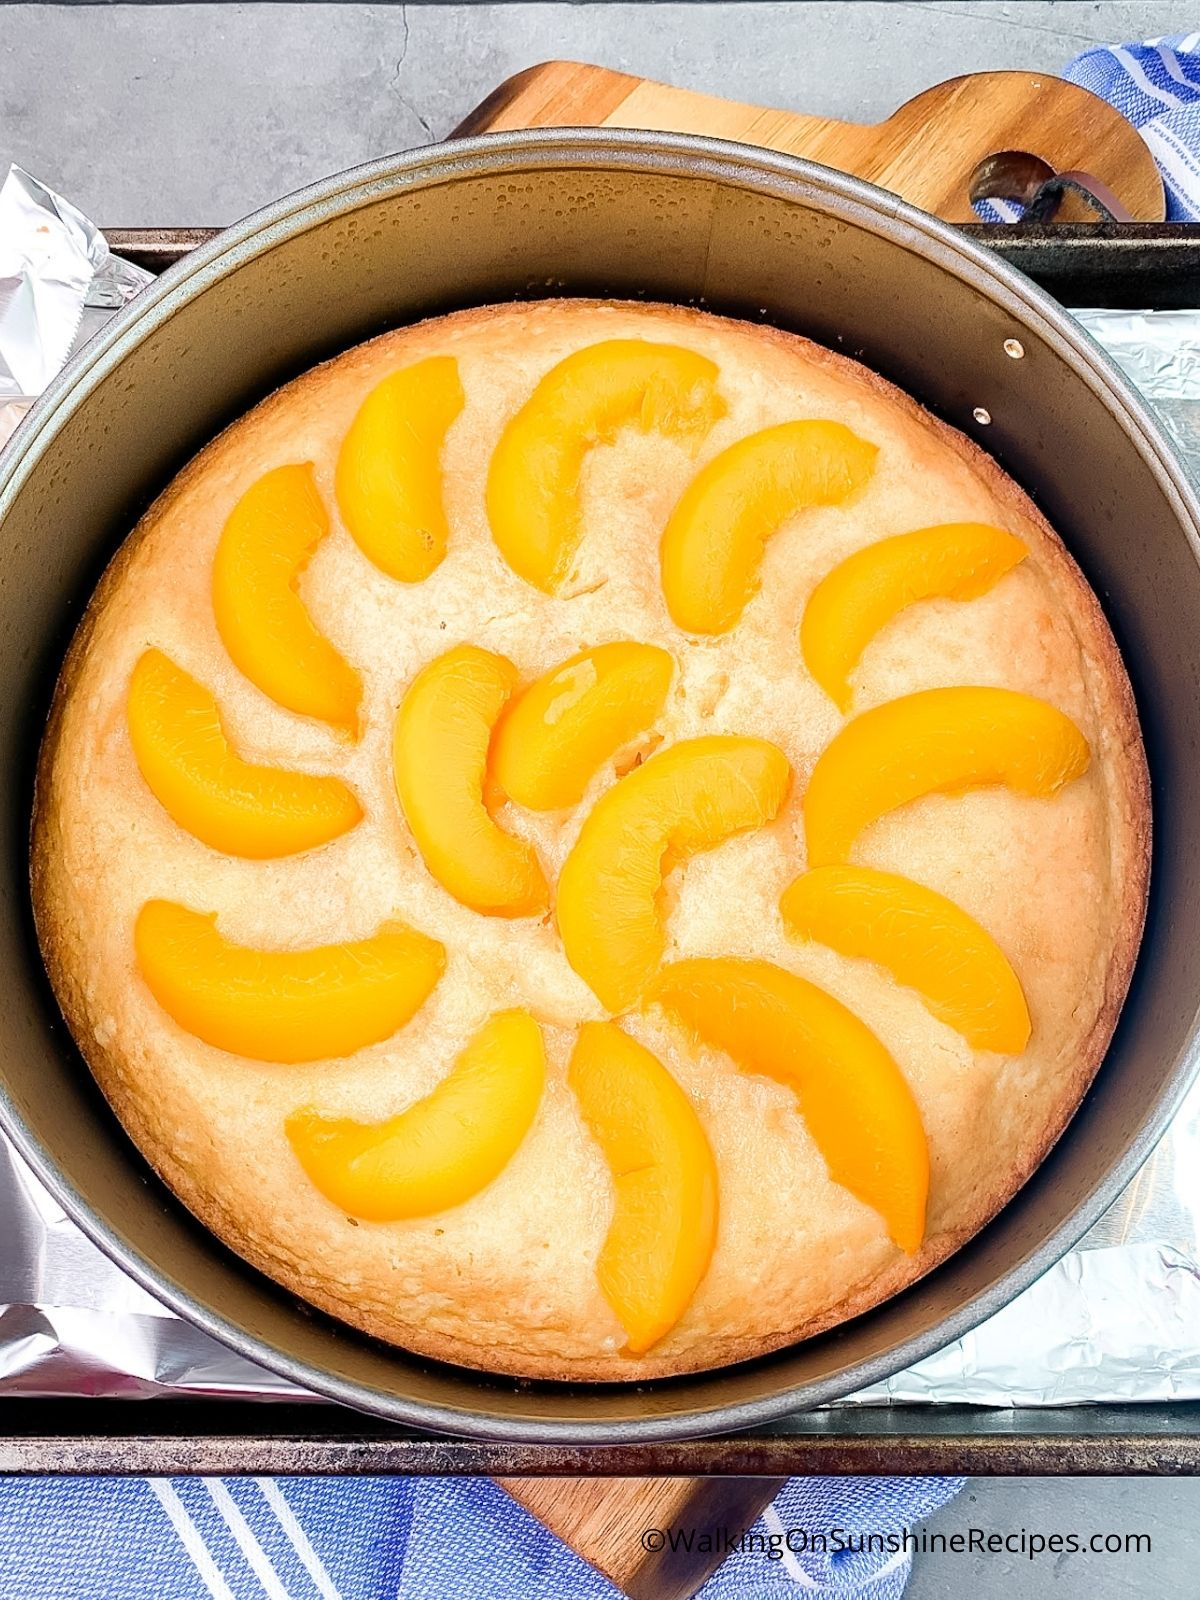 Add canned peaches to partially baked peach cake